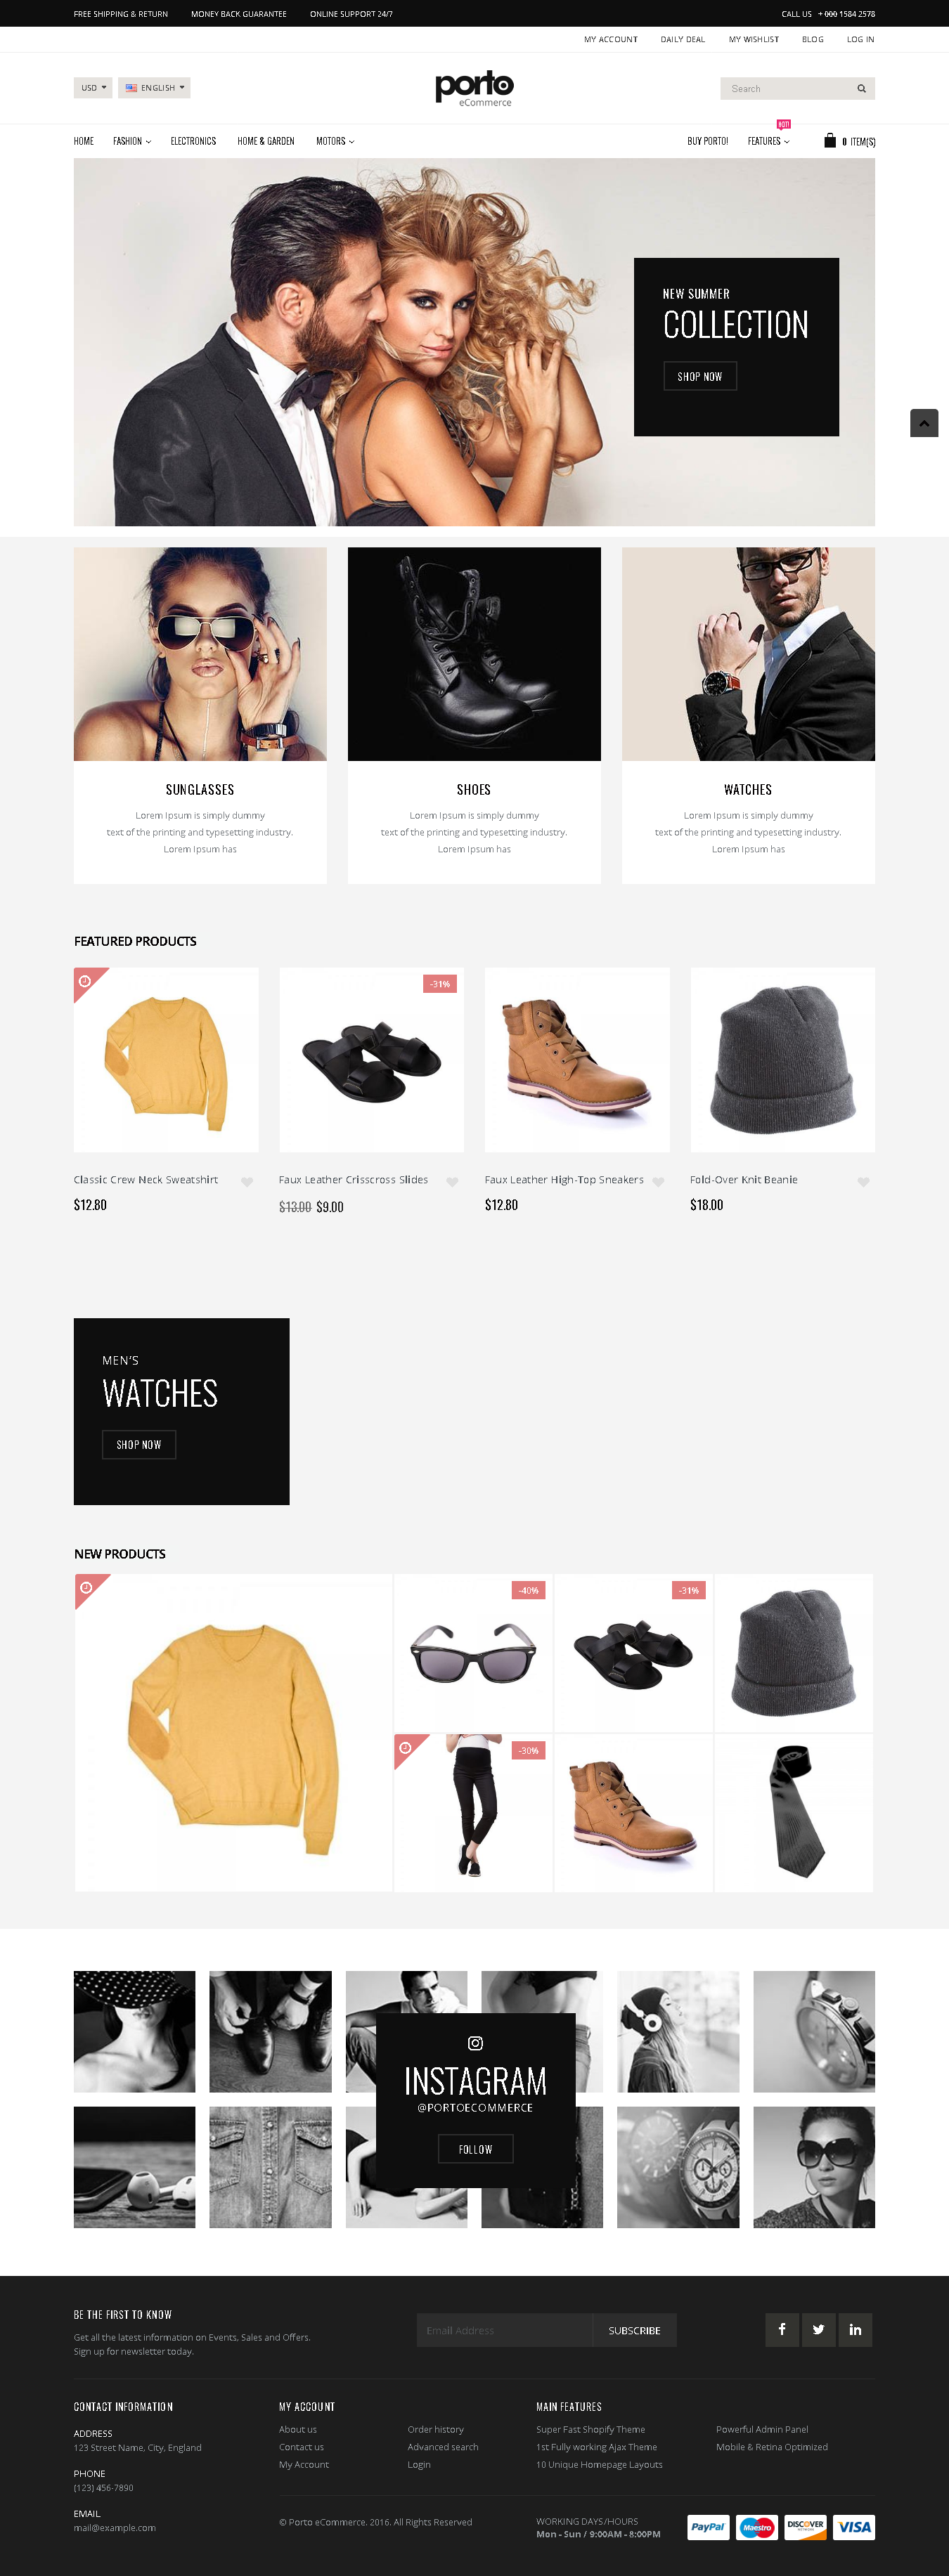 Best SHOPIFY Premium RESPONSIVE Themes Collection for Online Stores -Porto - Ultimate Responsive Shopify Theme